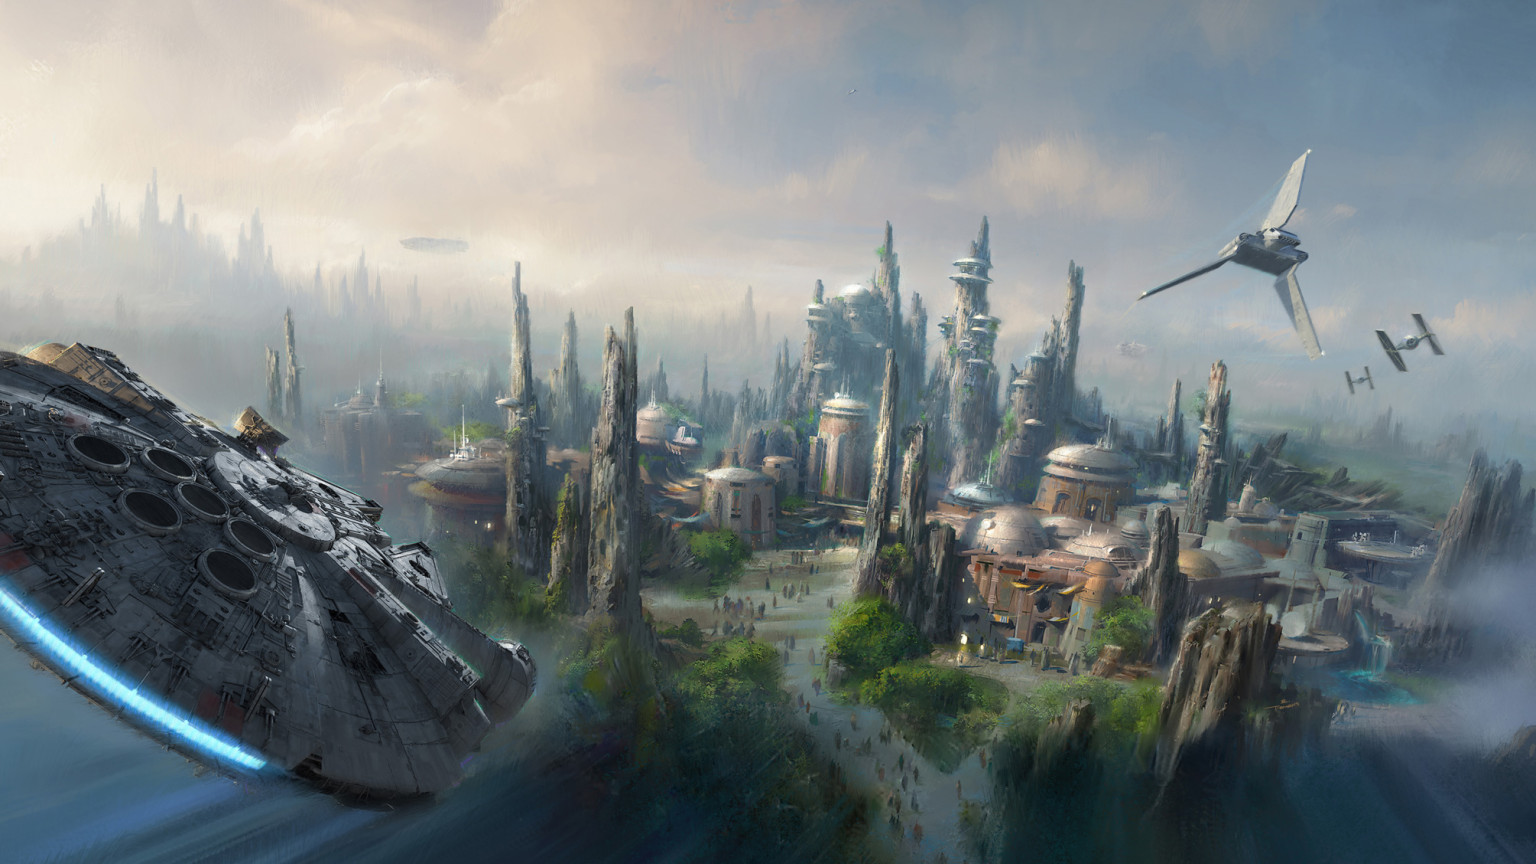 Star Wars Land